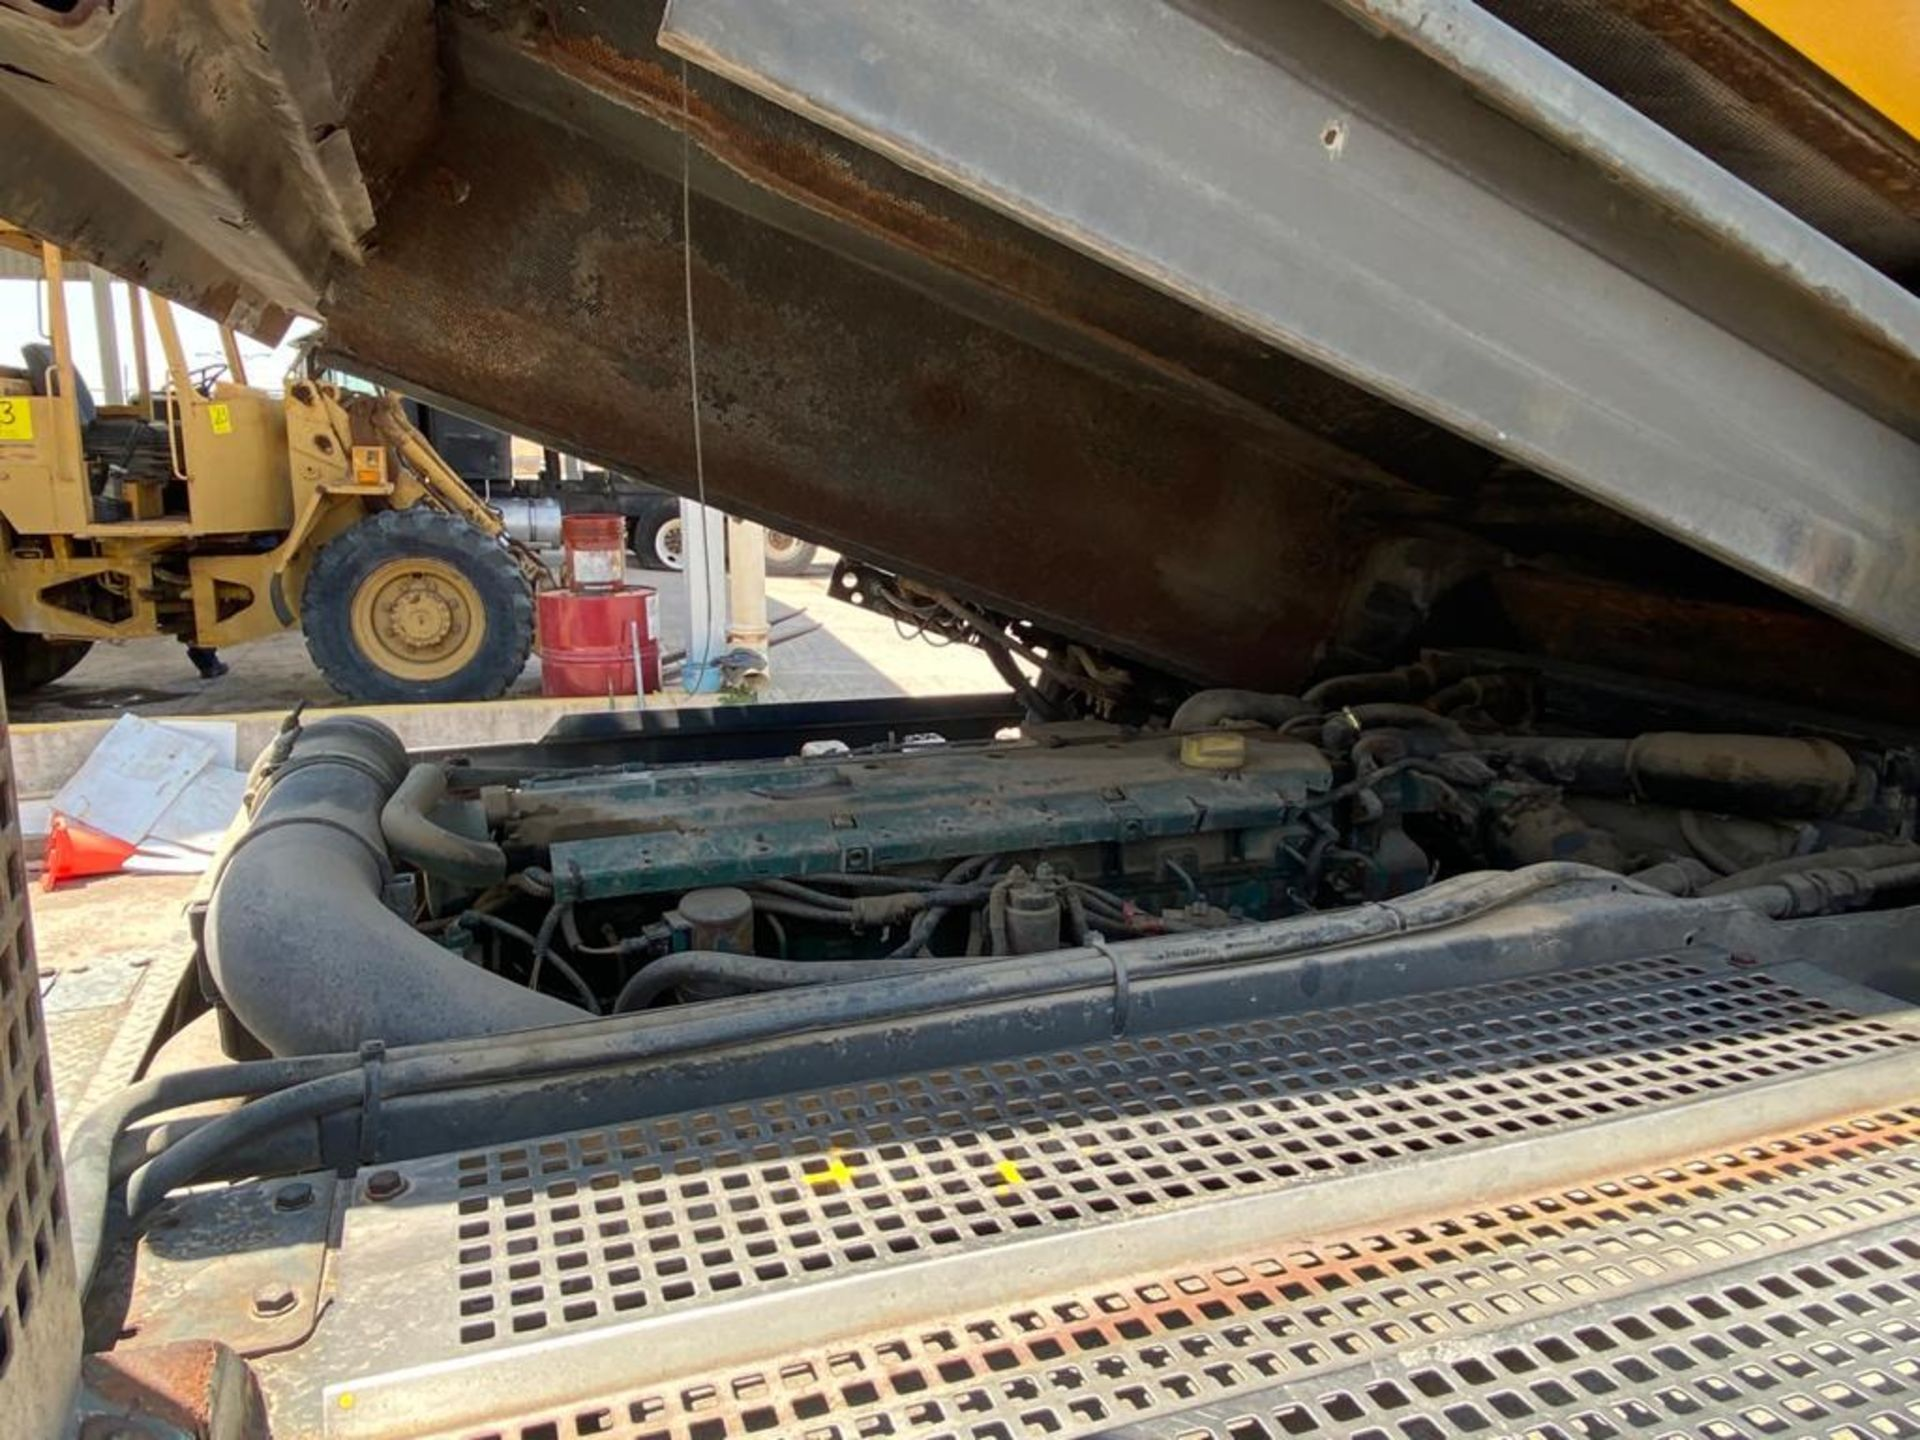 Terberg Capacity 2002 Terminal Tractor, automatic transmission, with Volvo motor - Image 42 of 57